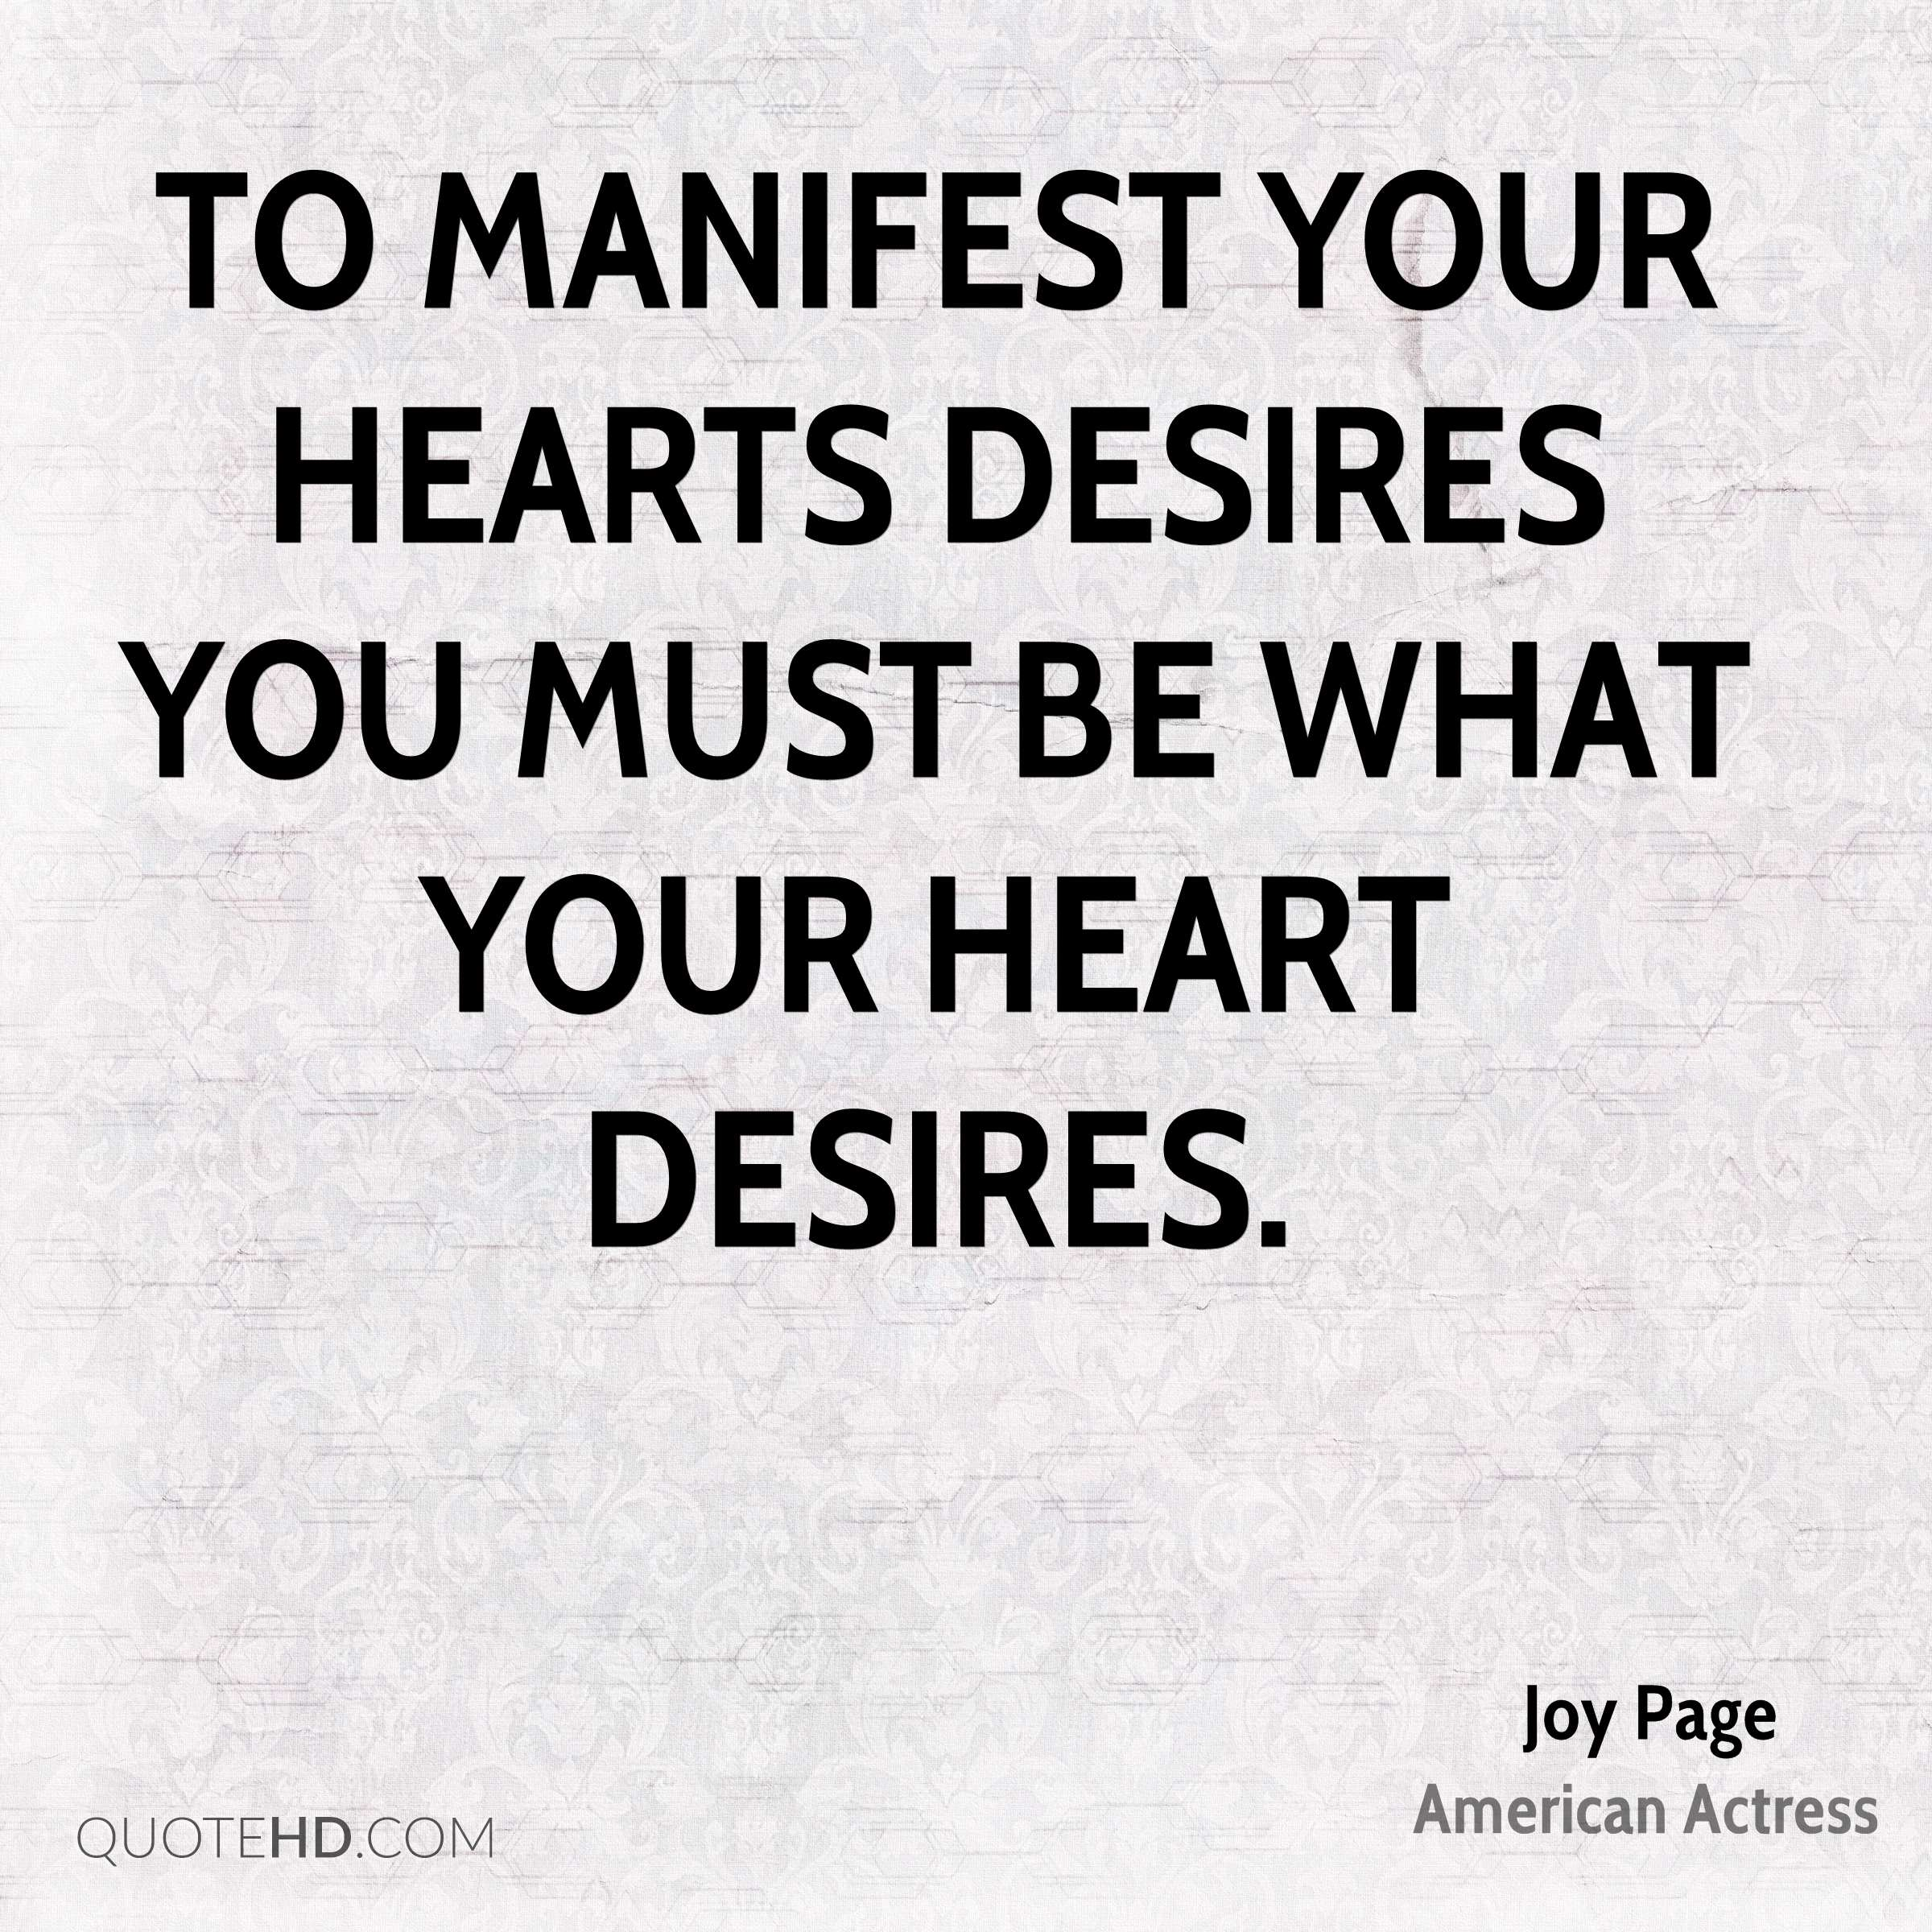 What Page Is This Quote On | Joy Page Quotes Quotehd